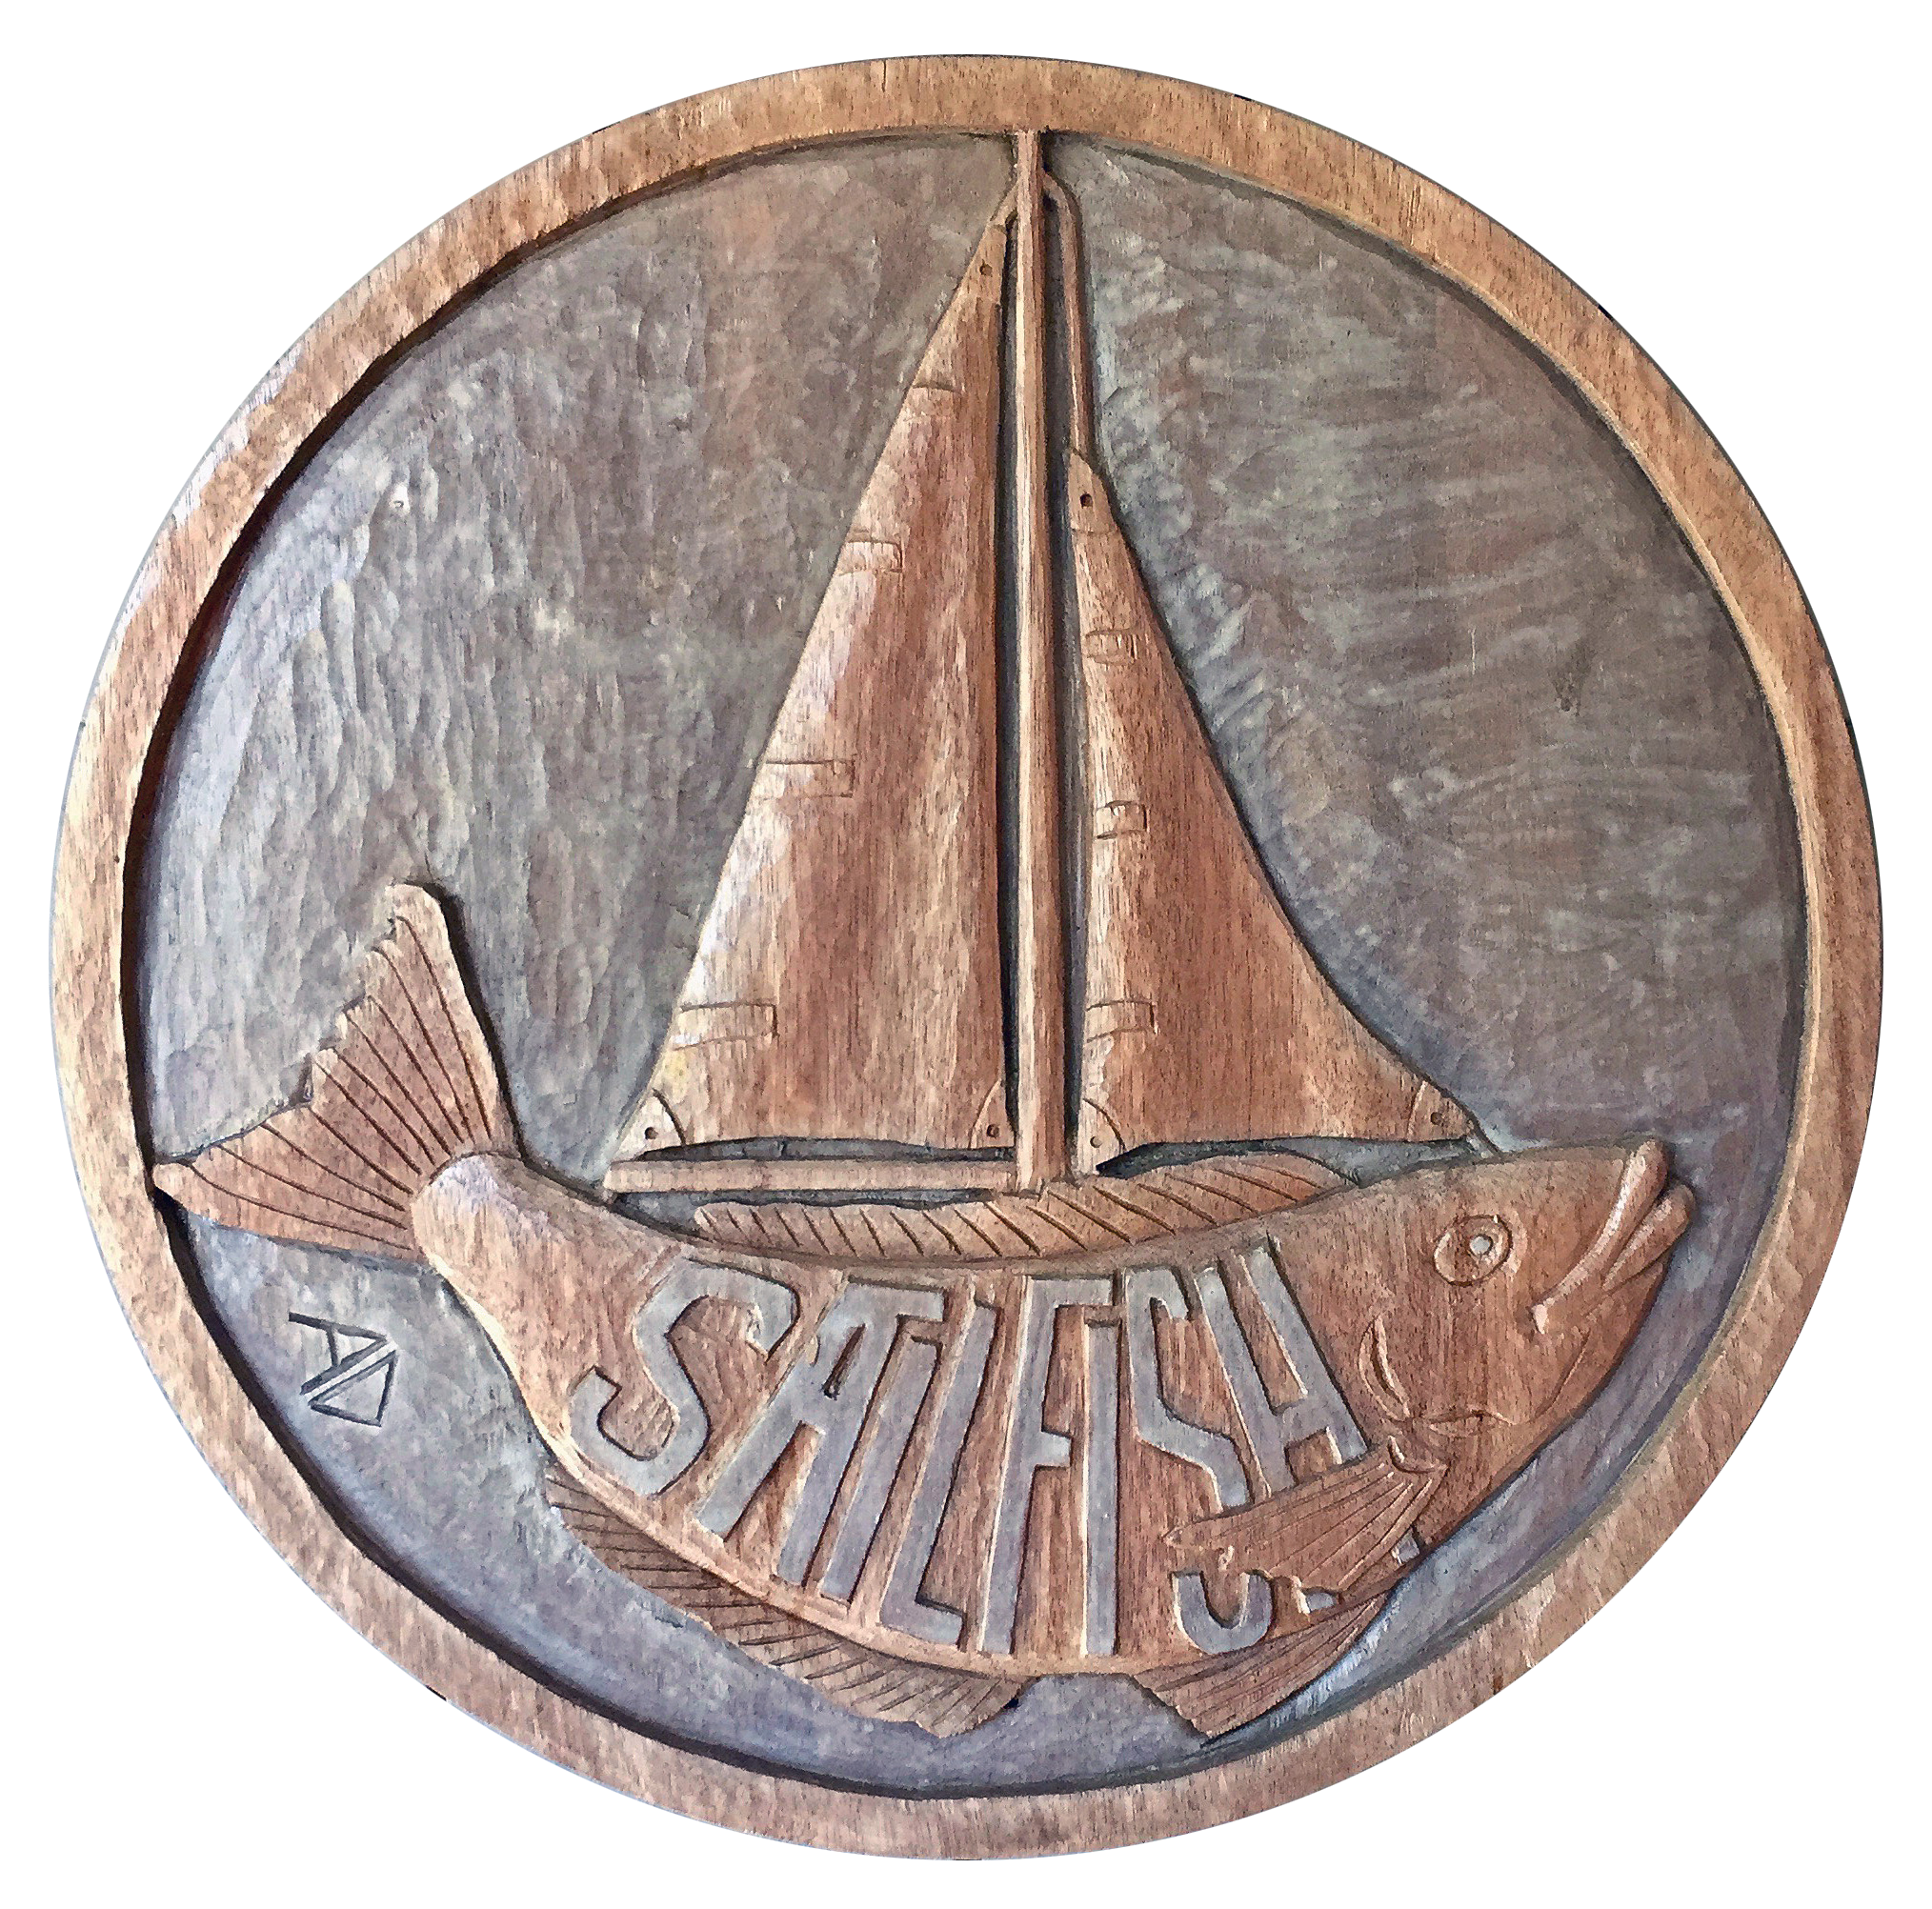 sailfish retreat logo